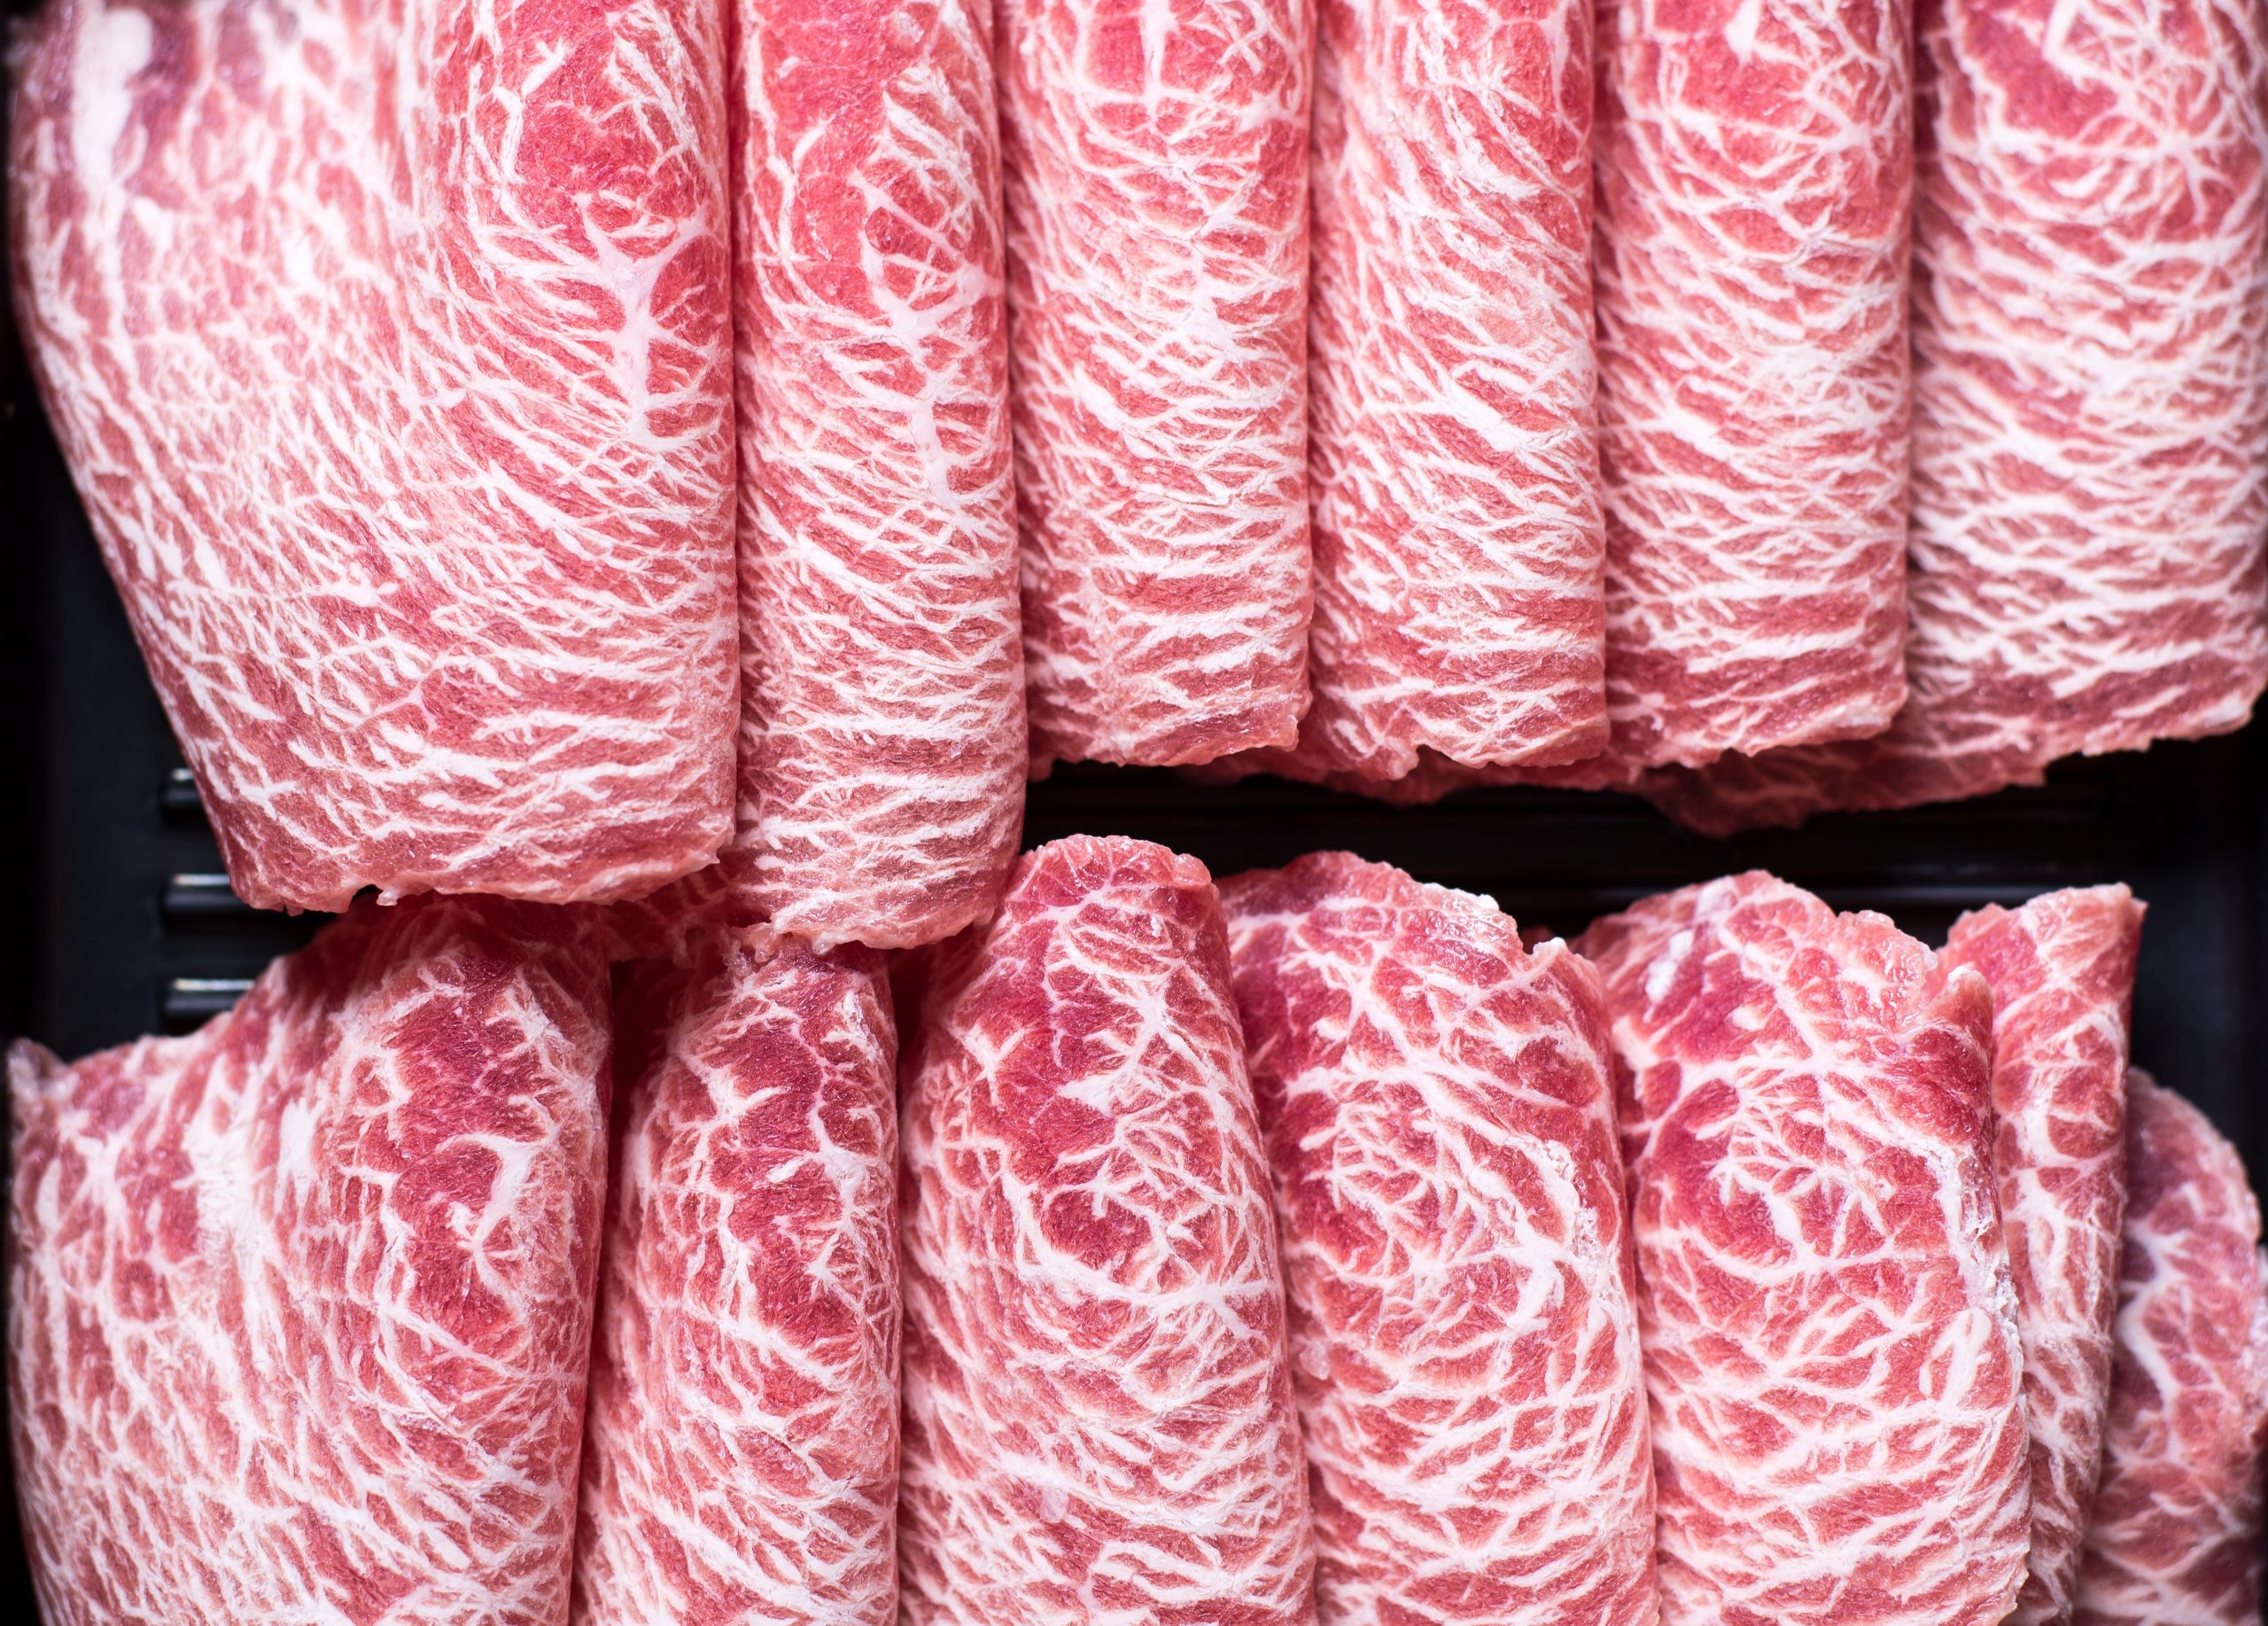 Large Quantities of Frozen Meat Seized for Violating Food Law